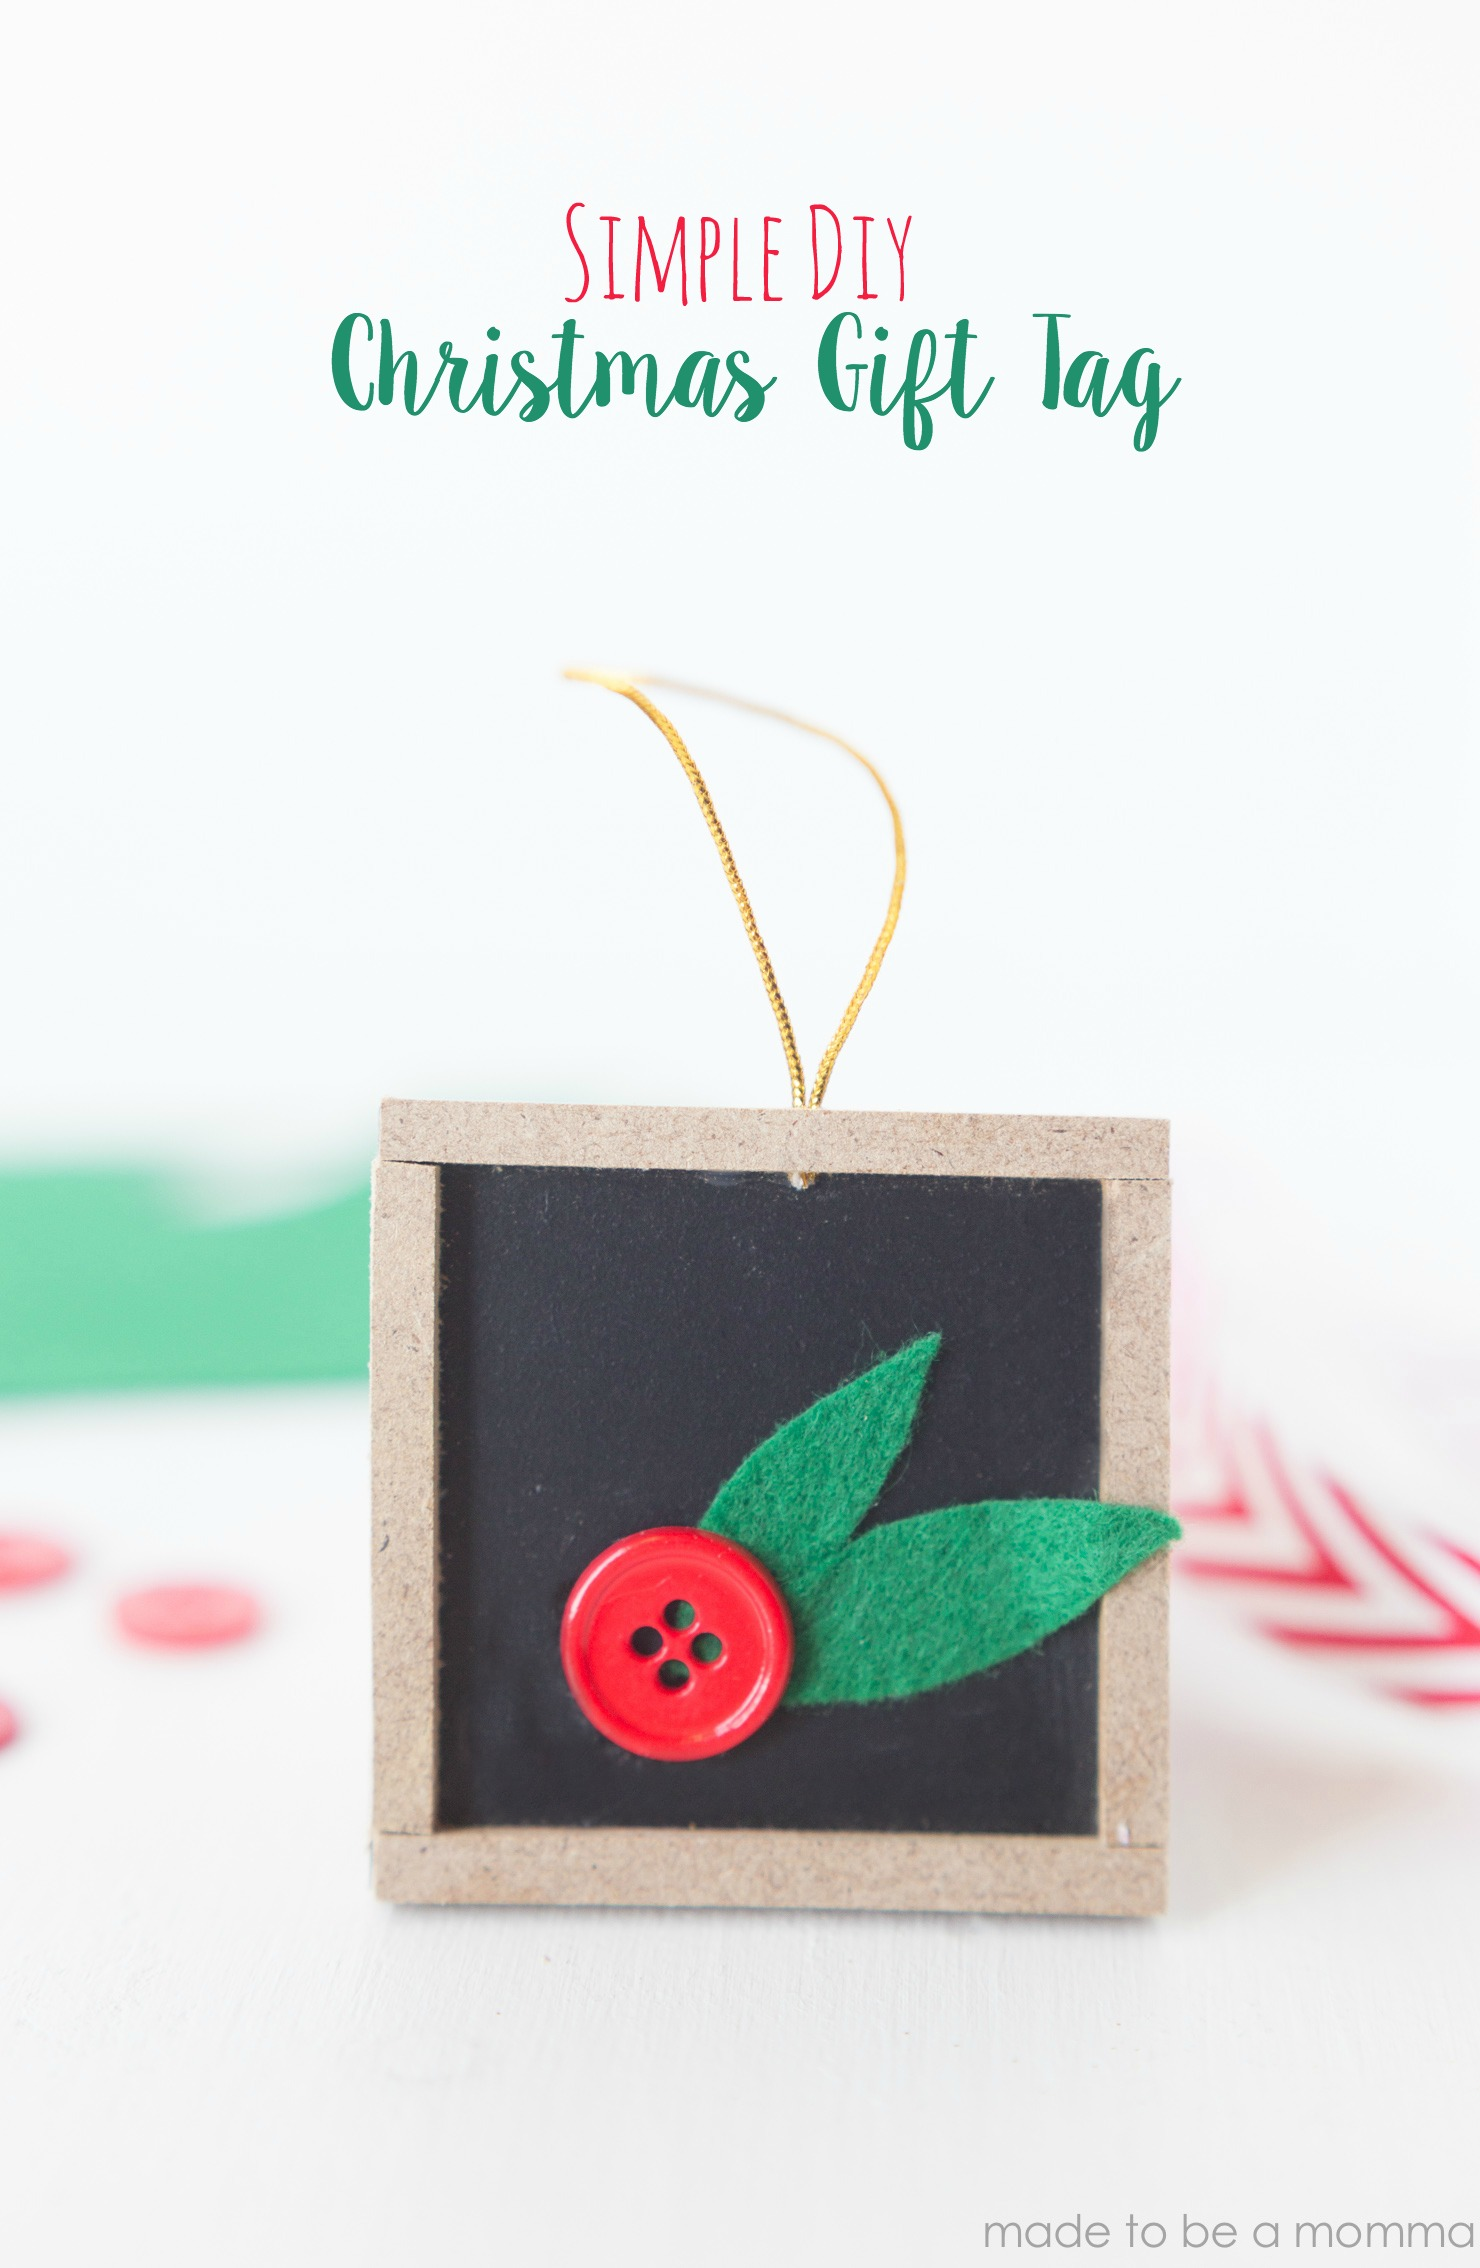 Diy Christmas Gift Tag - Made To Be A Momma